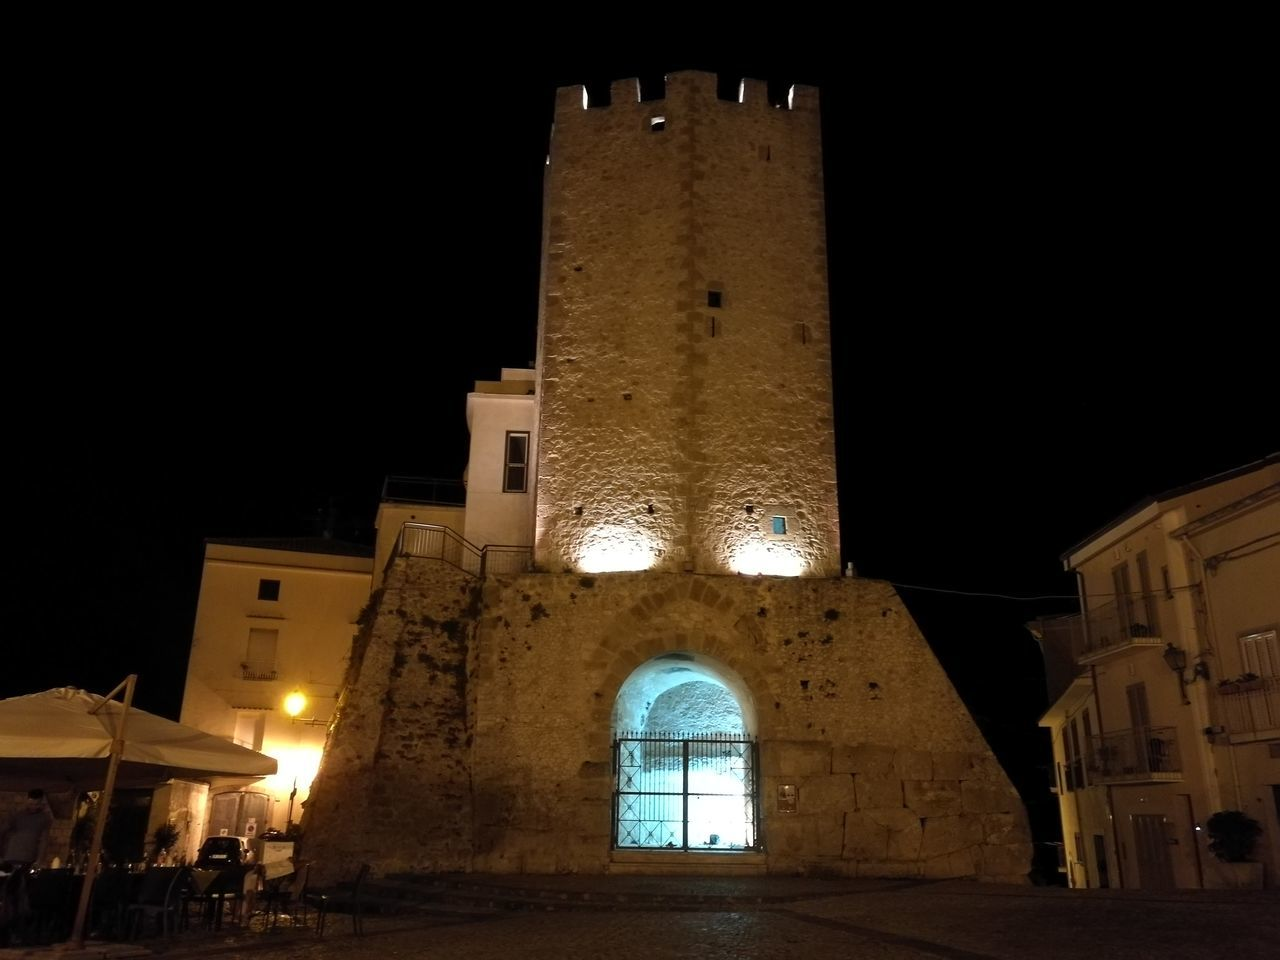 Torre Castellone Formia Architecture Night Illuminated Architecture Nofilter No Filter, No Edit, Just Photography Outdoors No People Cats Of EyeEm Cat Photography History Tranquility Waiting For Summer Italy🇮🇹 Beautiful Day